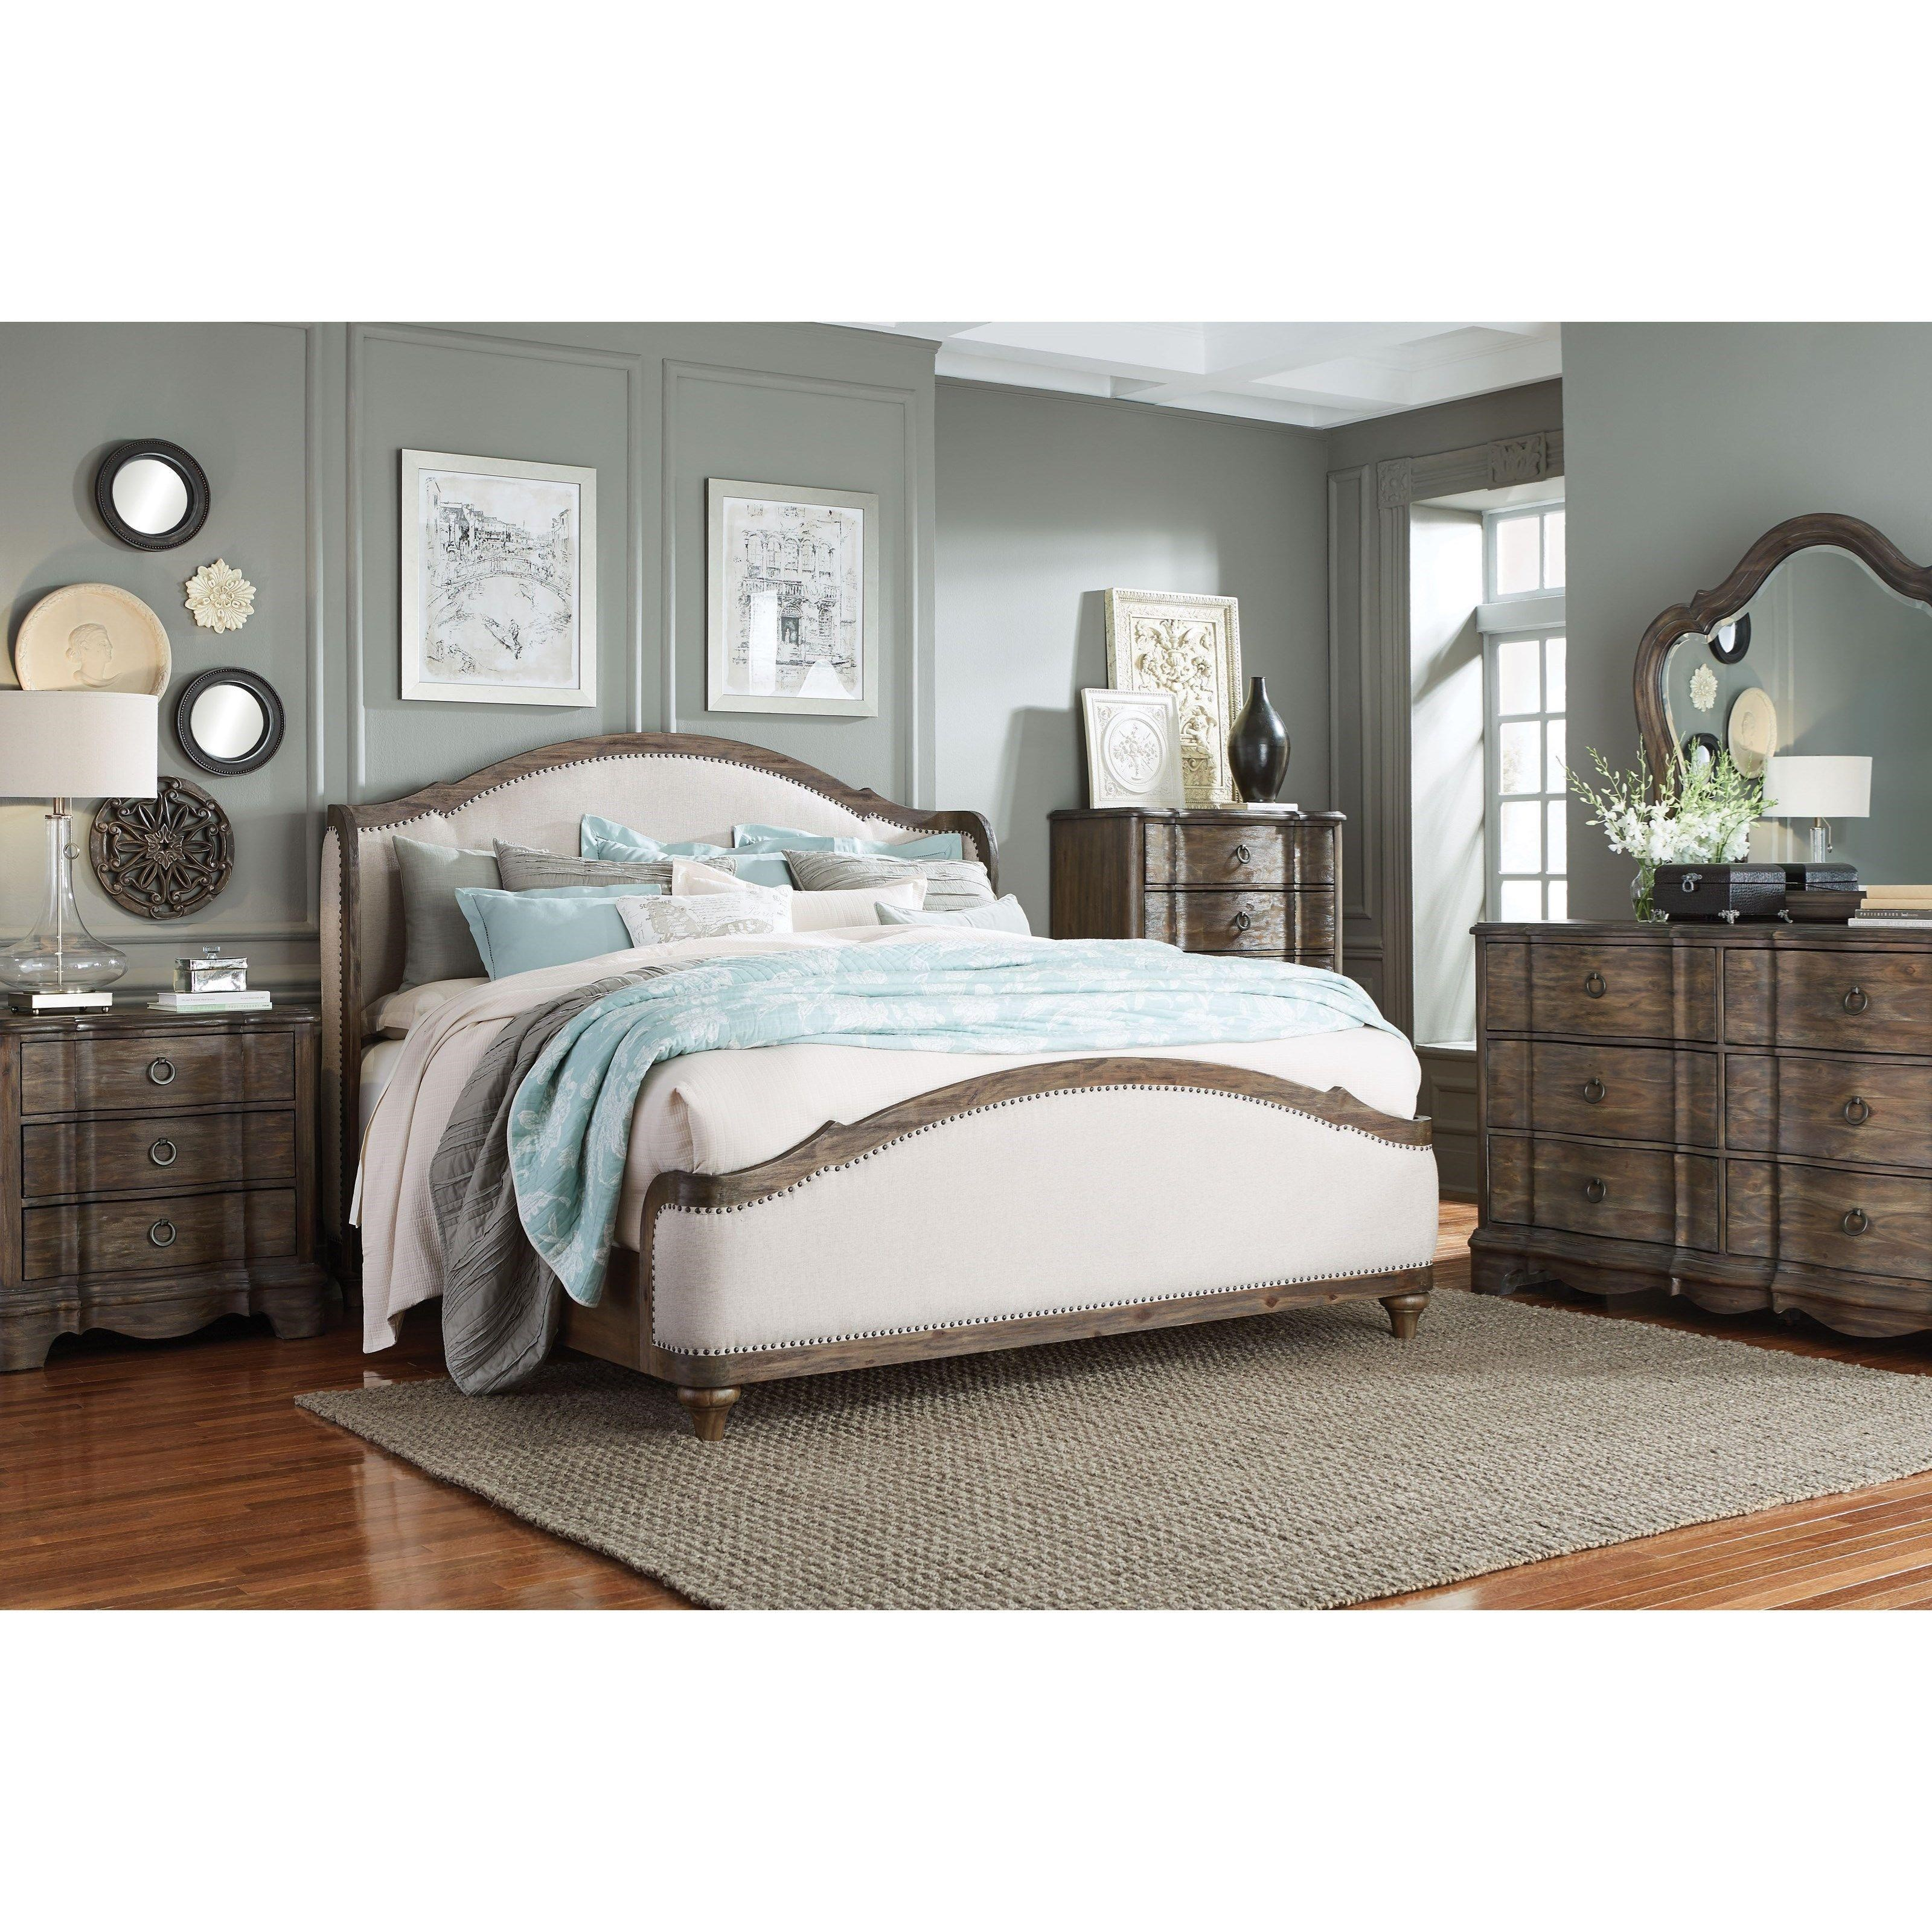 Standard Furniture Parliament King Bed, Dresser, Mirror And Nightstand